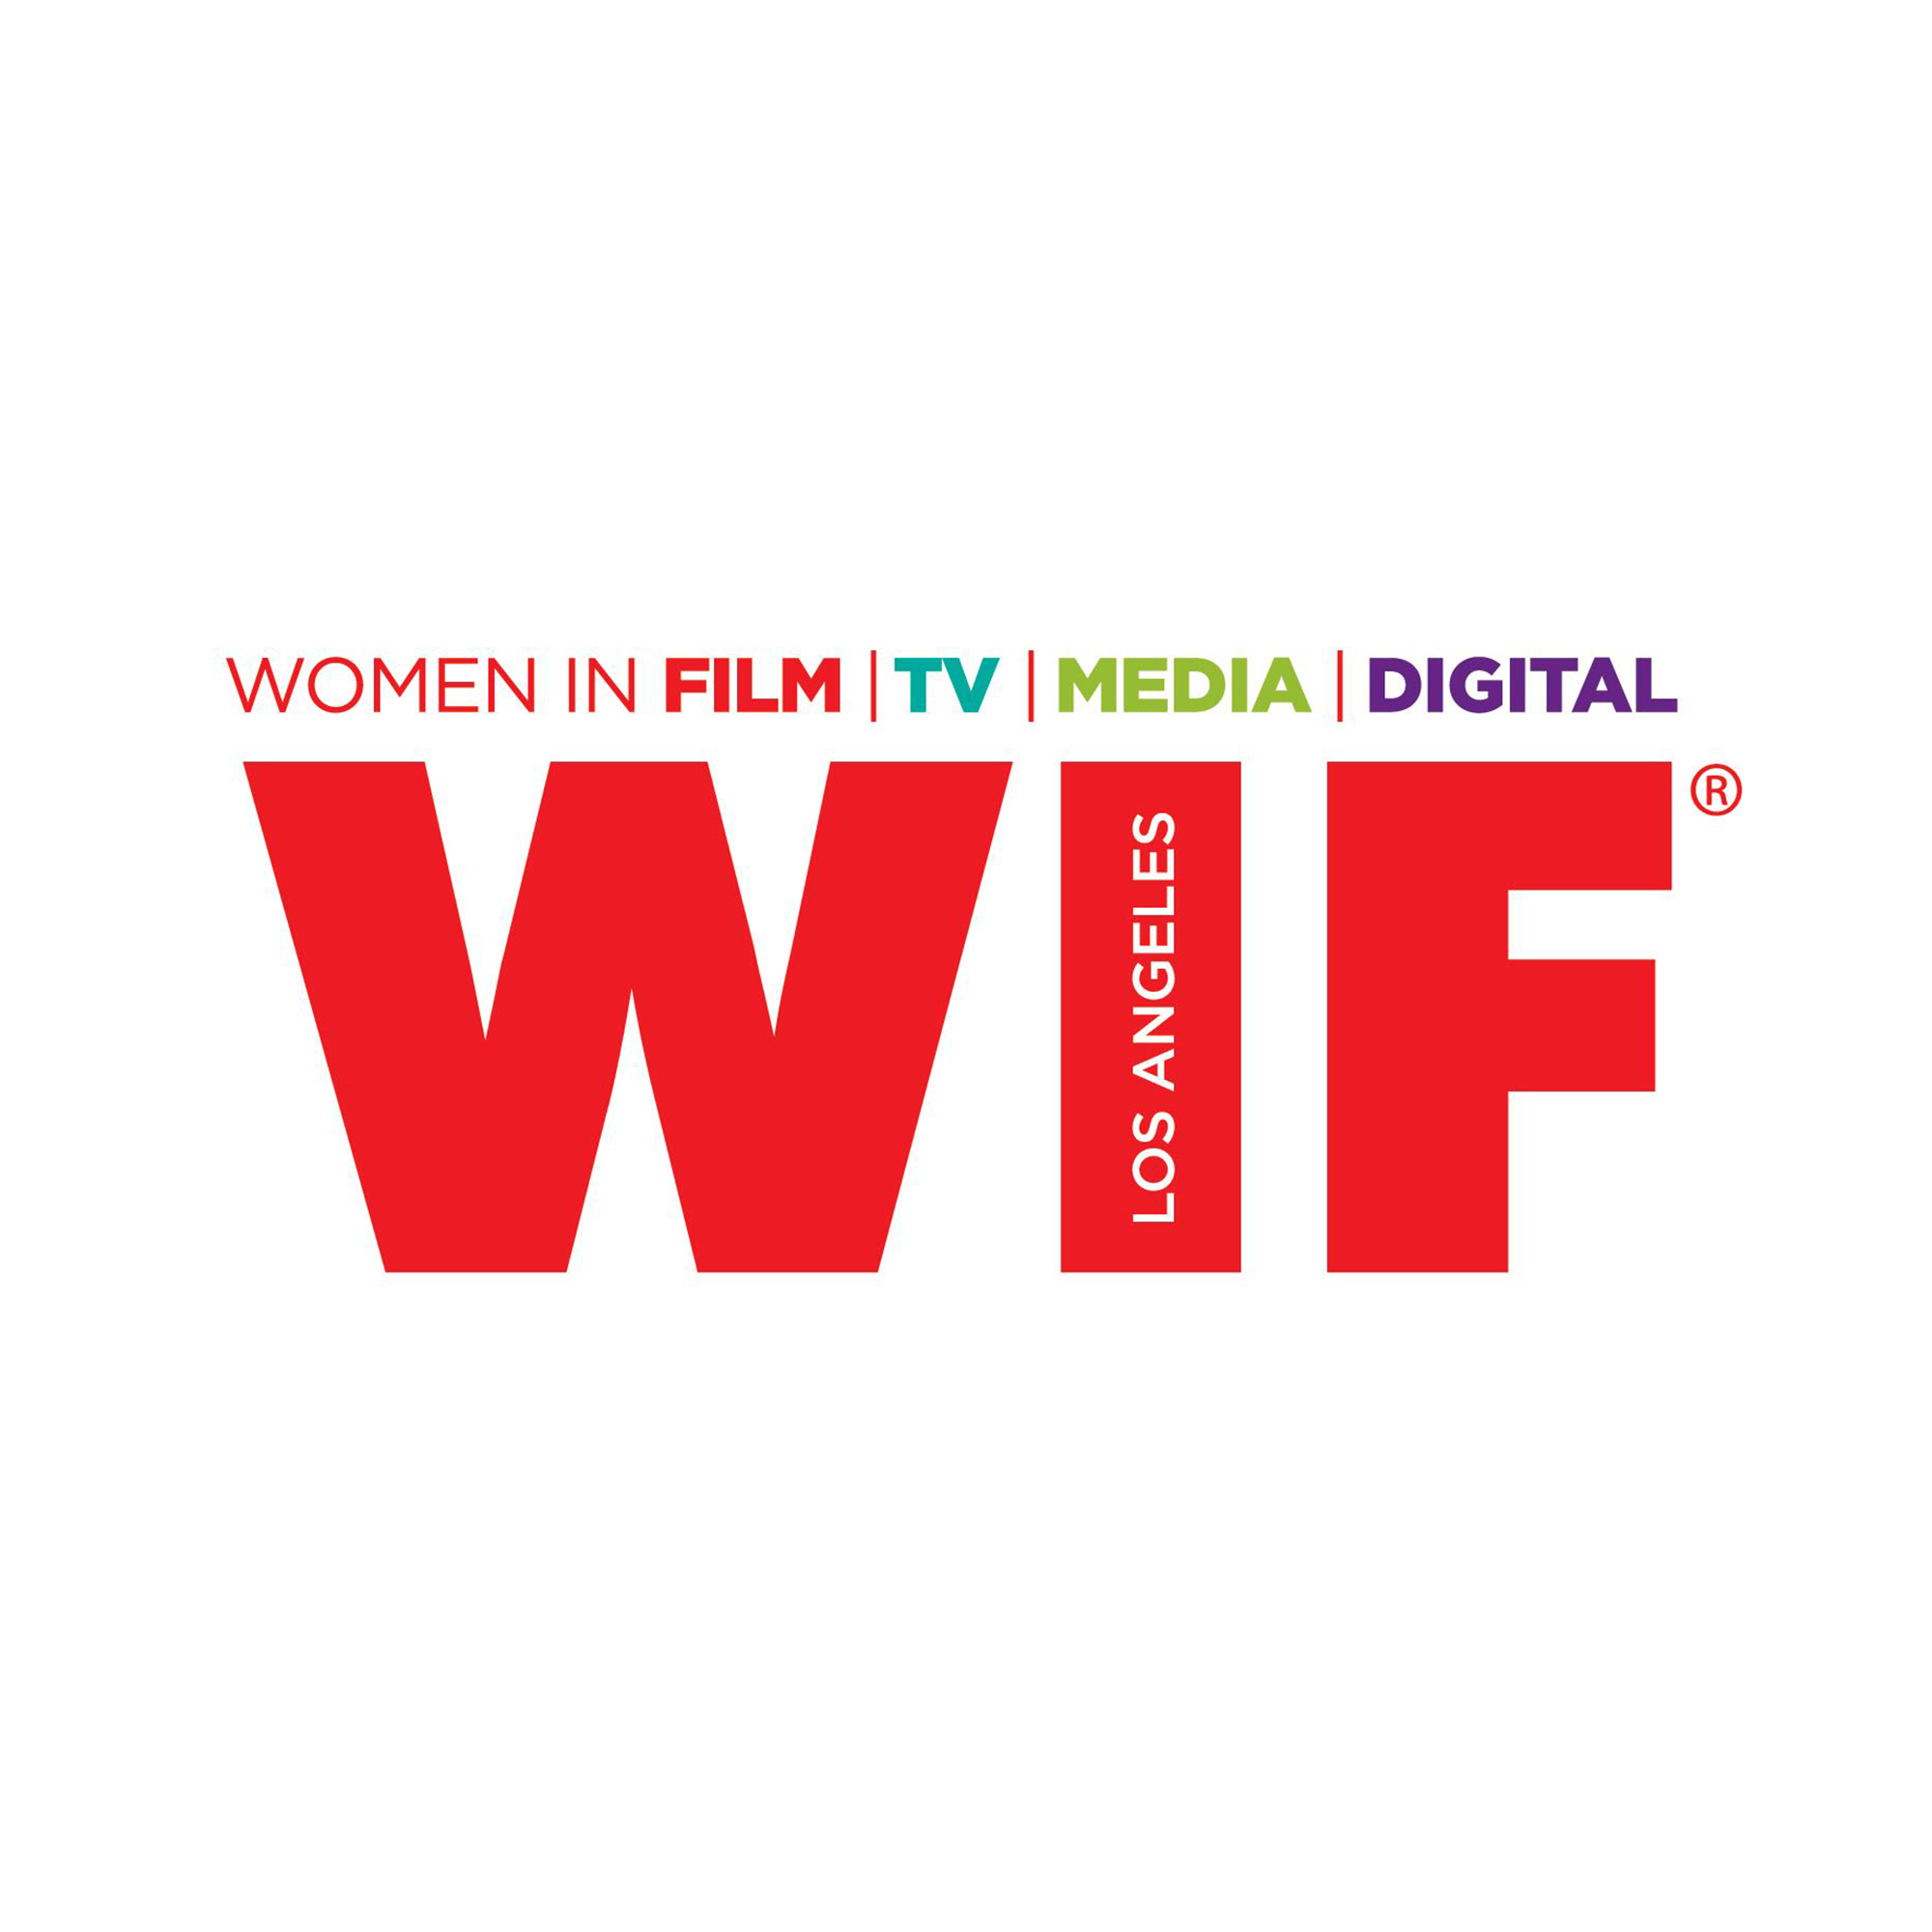 EOAD-Clients-Women in Film.jpg